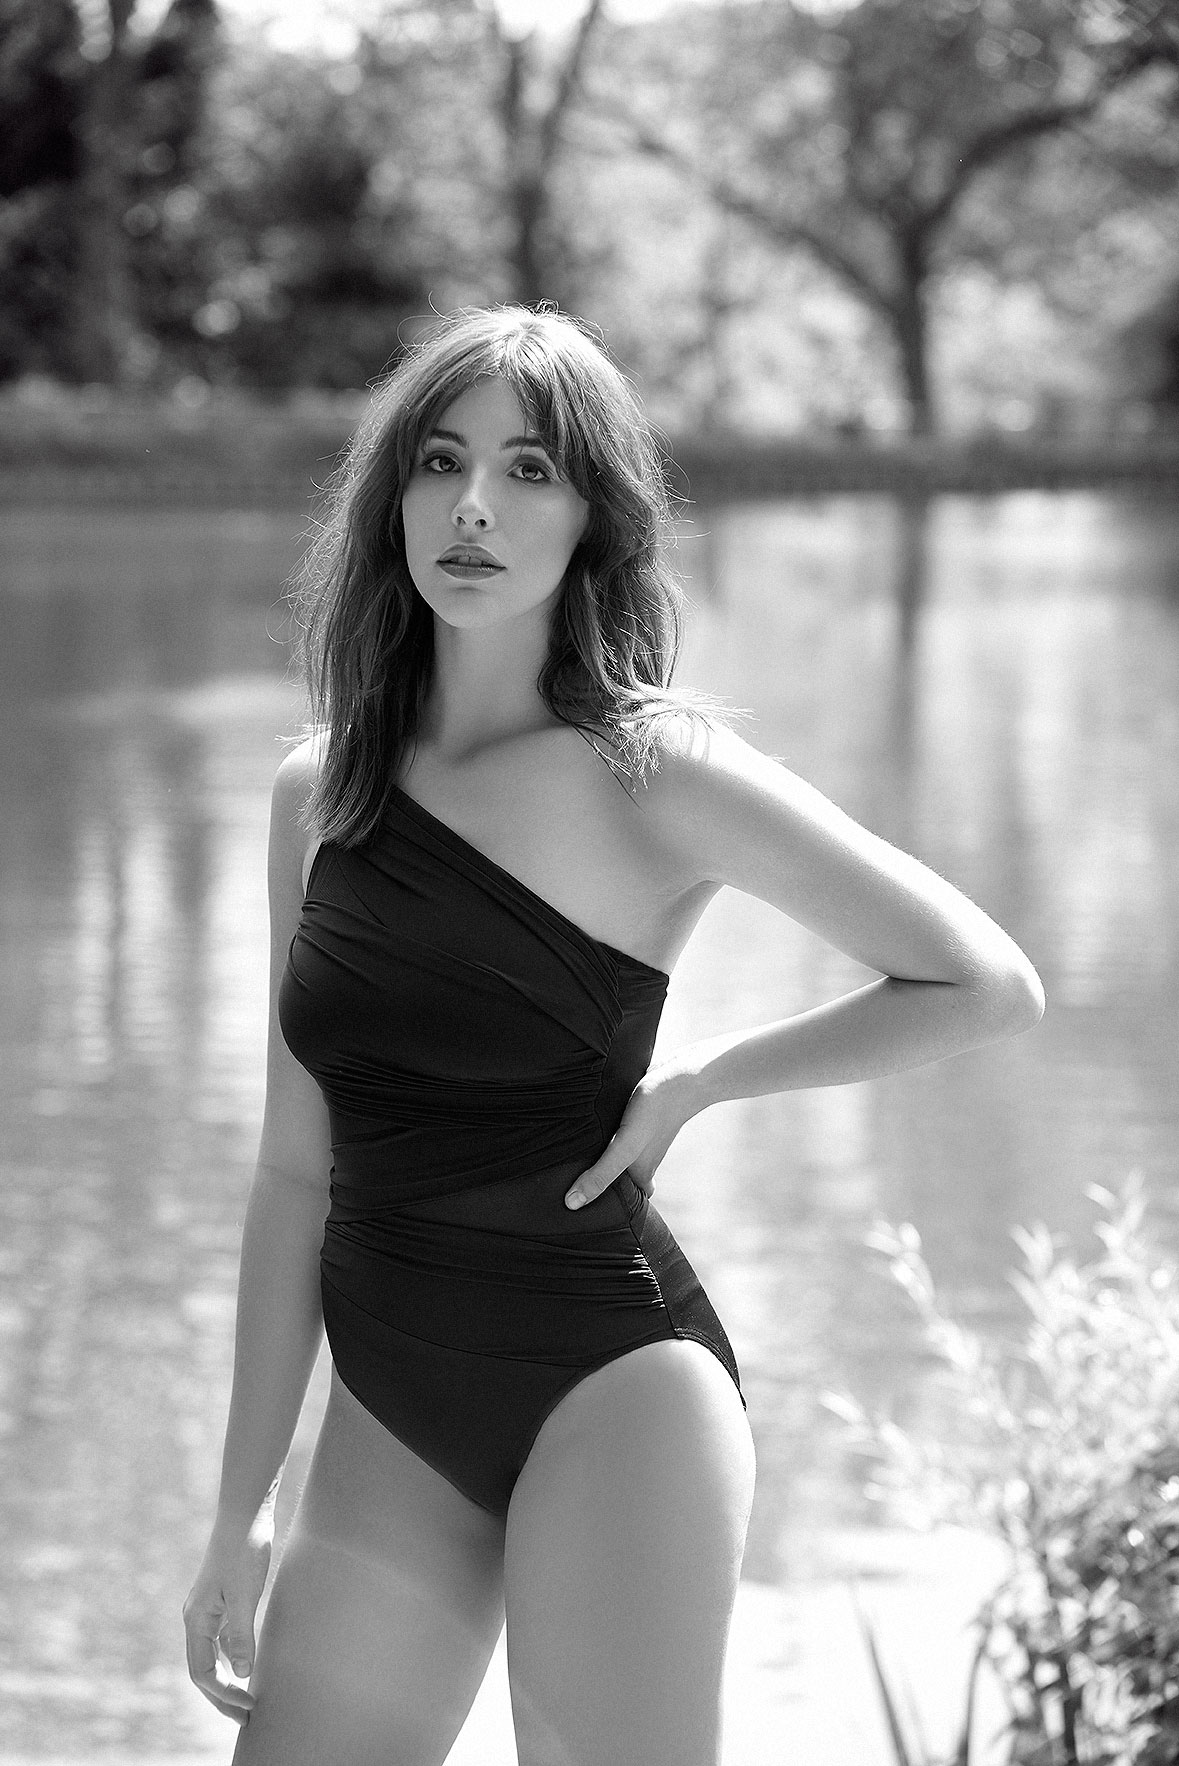 Miracle-suit-black-swimwear-hamstead-heath-pool-swimsuit-lingerie-la-femme-editorial-photoshoot-bathing-suit-02